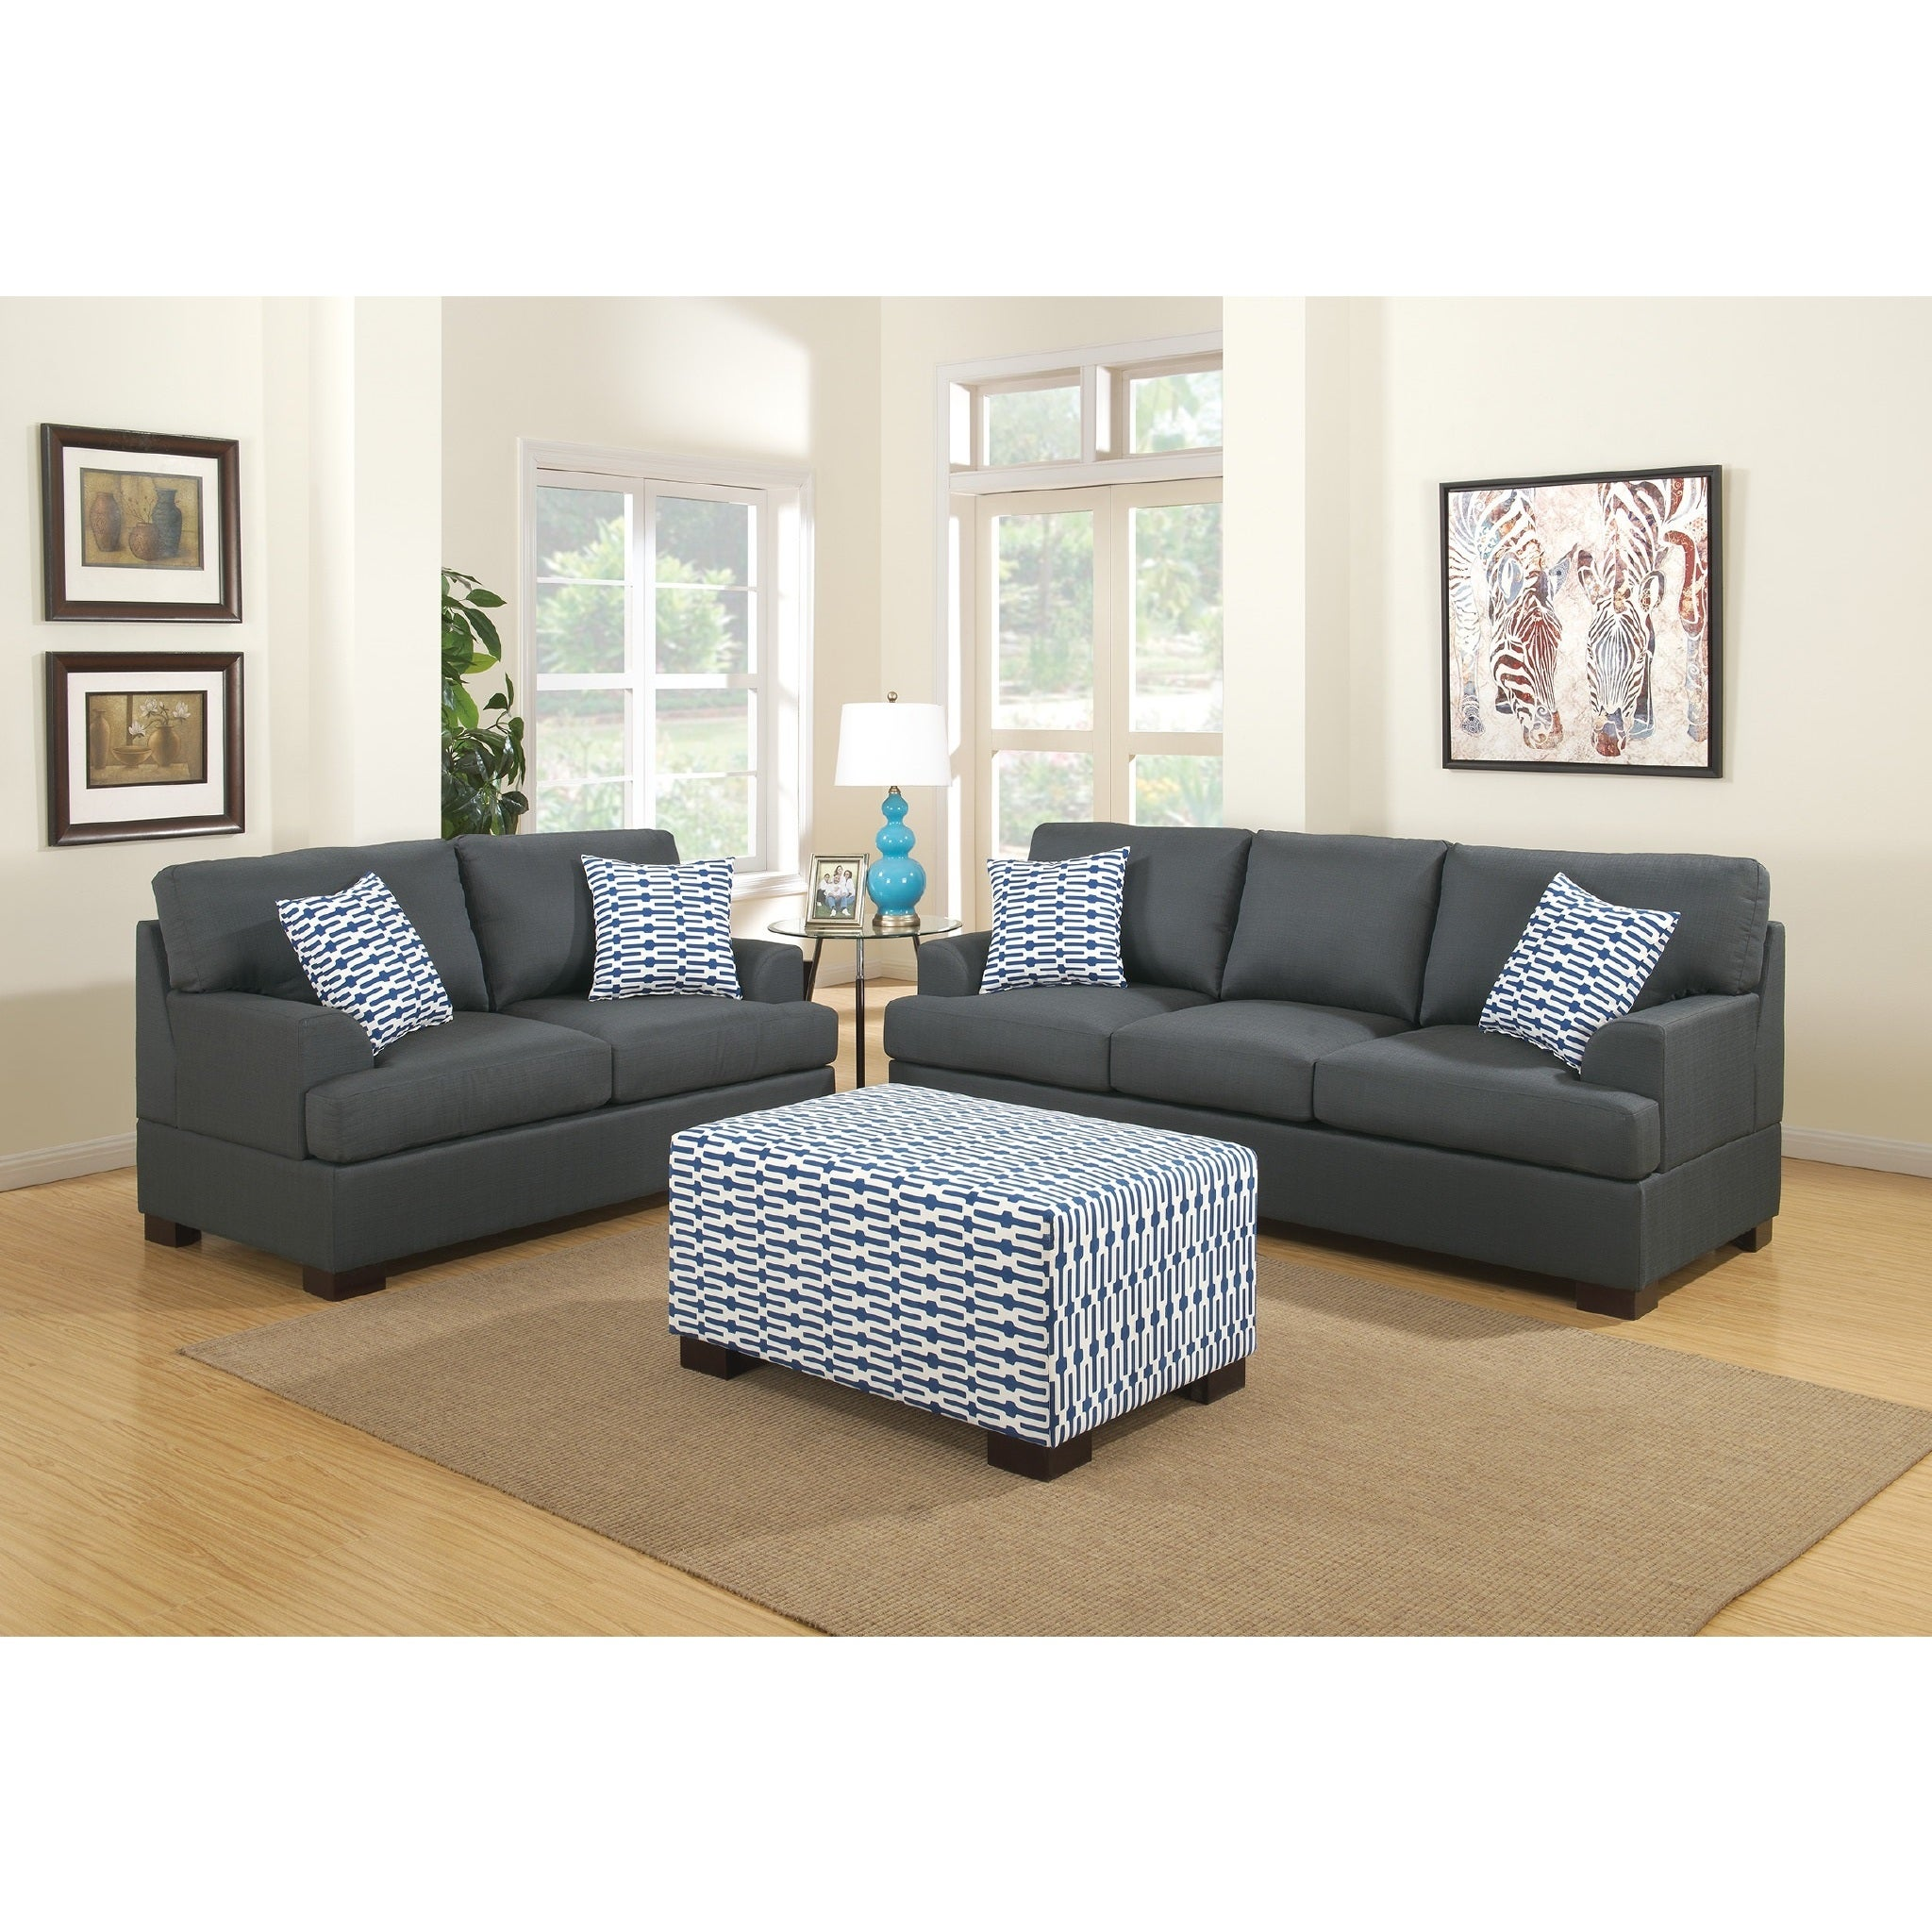 Marengo Grey 3 piece Sofa Set Free Shipping Today Overstock